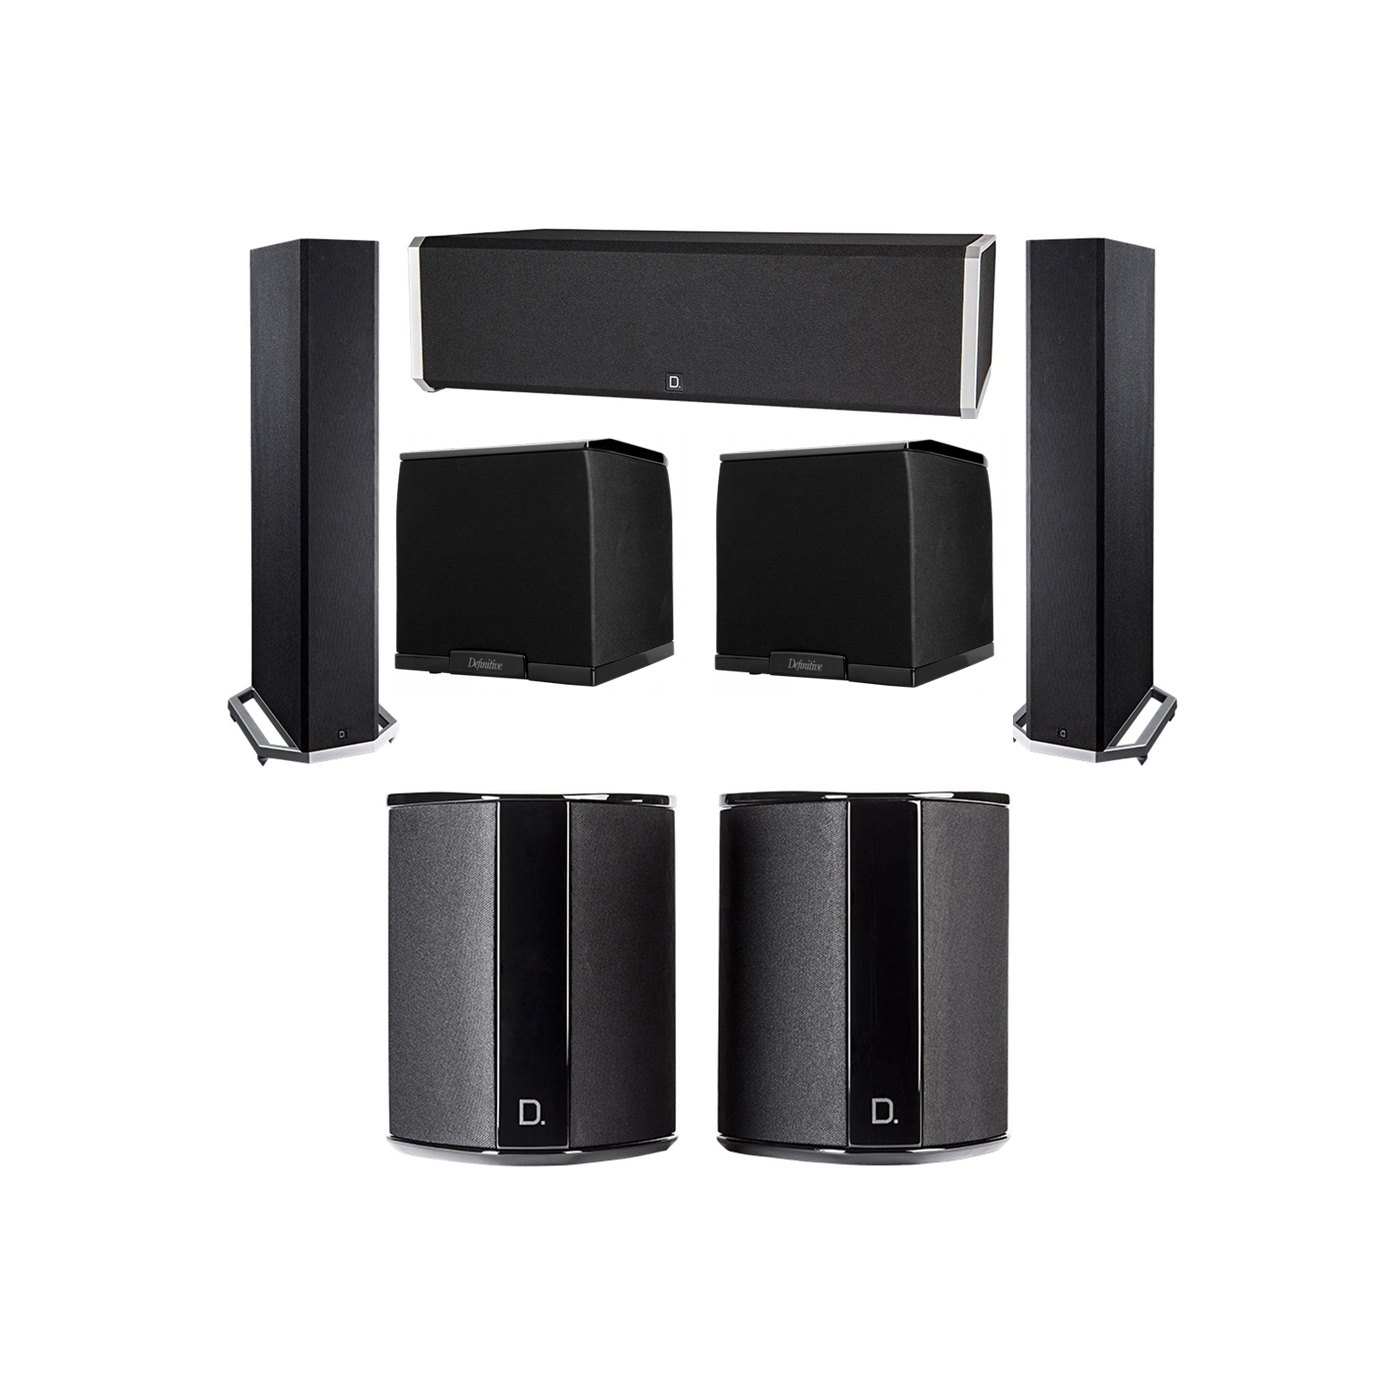 Definitive Technology 5.2 System with 2 BP9020 Tower Speakers, 1 CS9040 Center Channel Speaker, 2 SR9040 Surround Speaker, 2 Definitive Technology SuperCube 2000 Powered Subwoofer